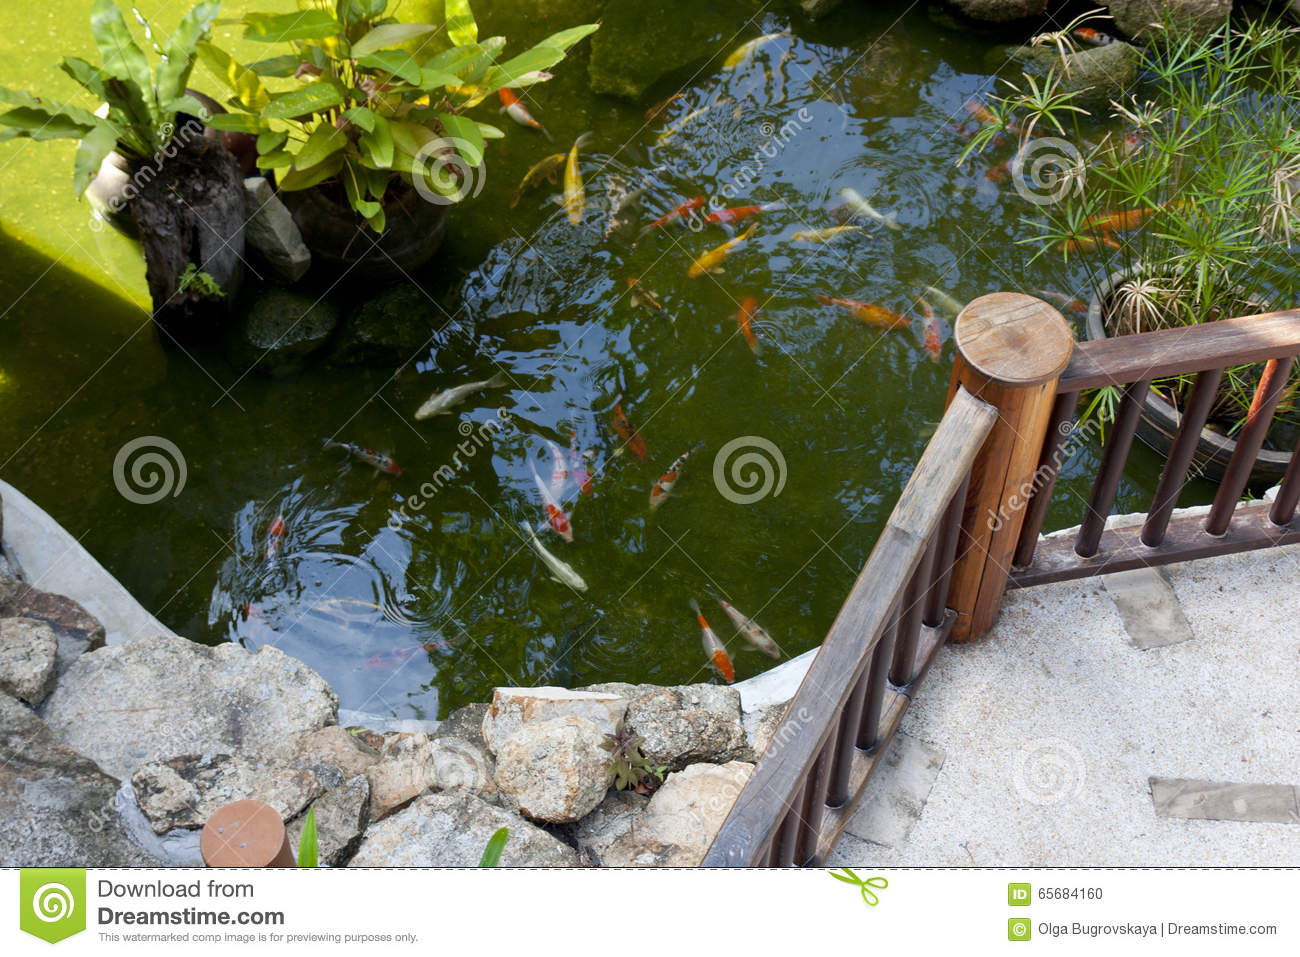 Japanese koi carp stock photo image 65684160 for Artificial fish pond